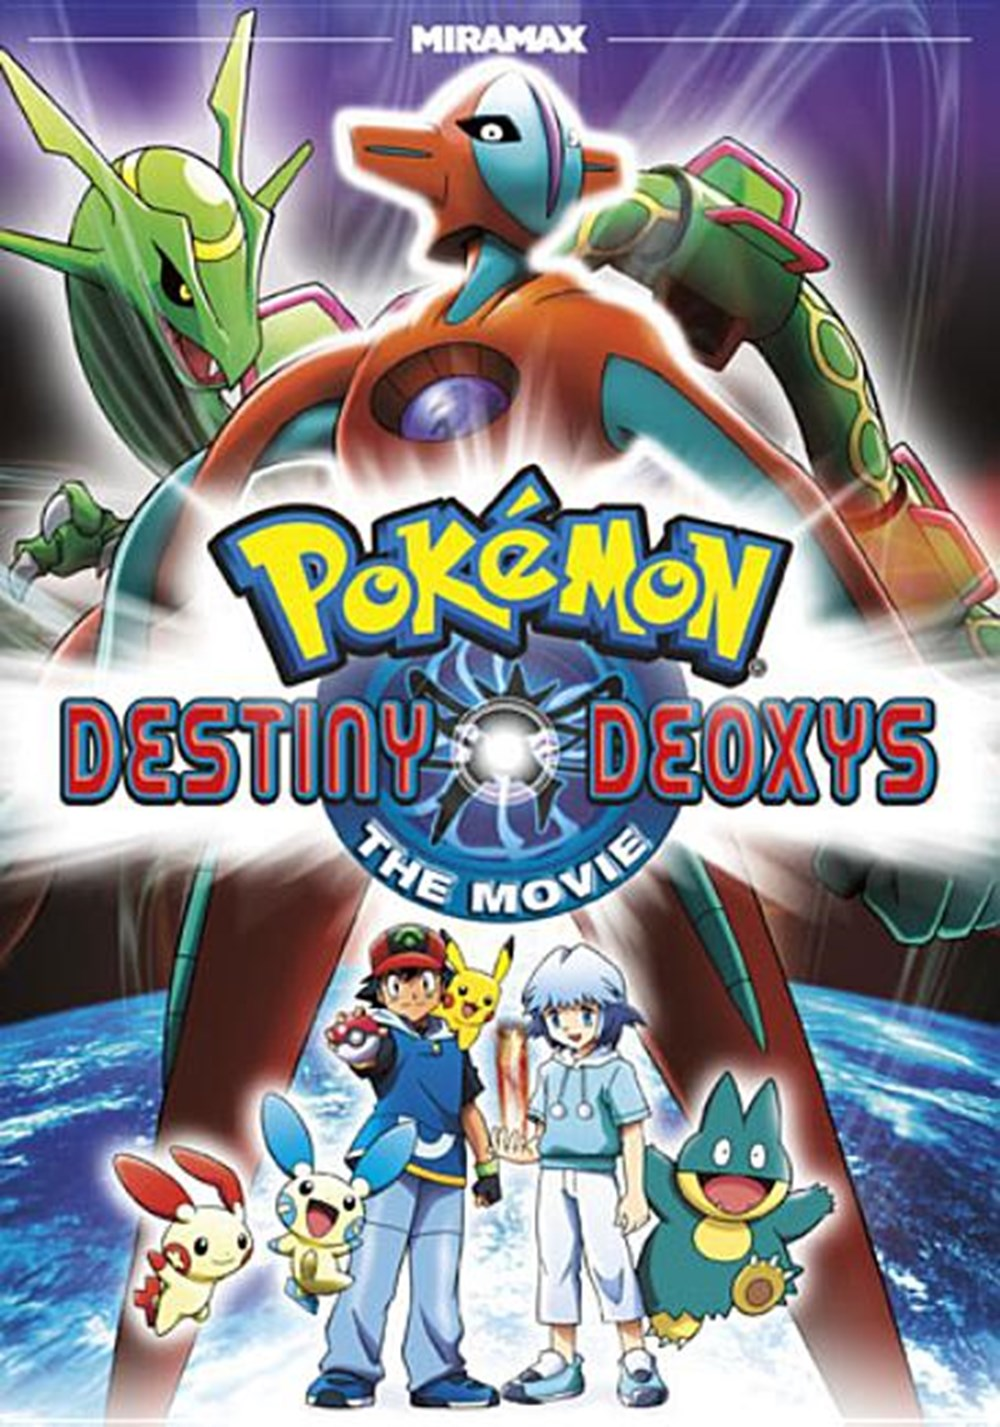 Pokemon Destiny Deoxys the Movie